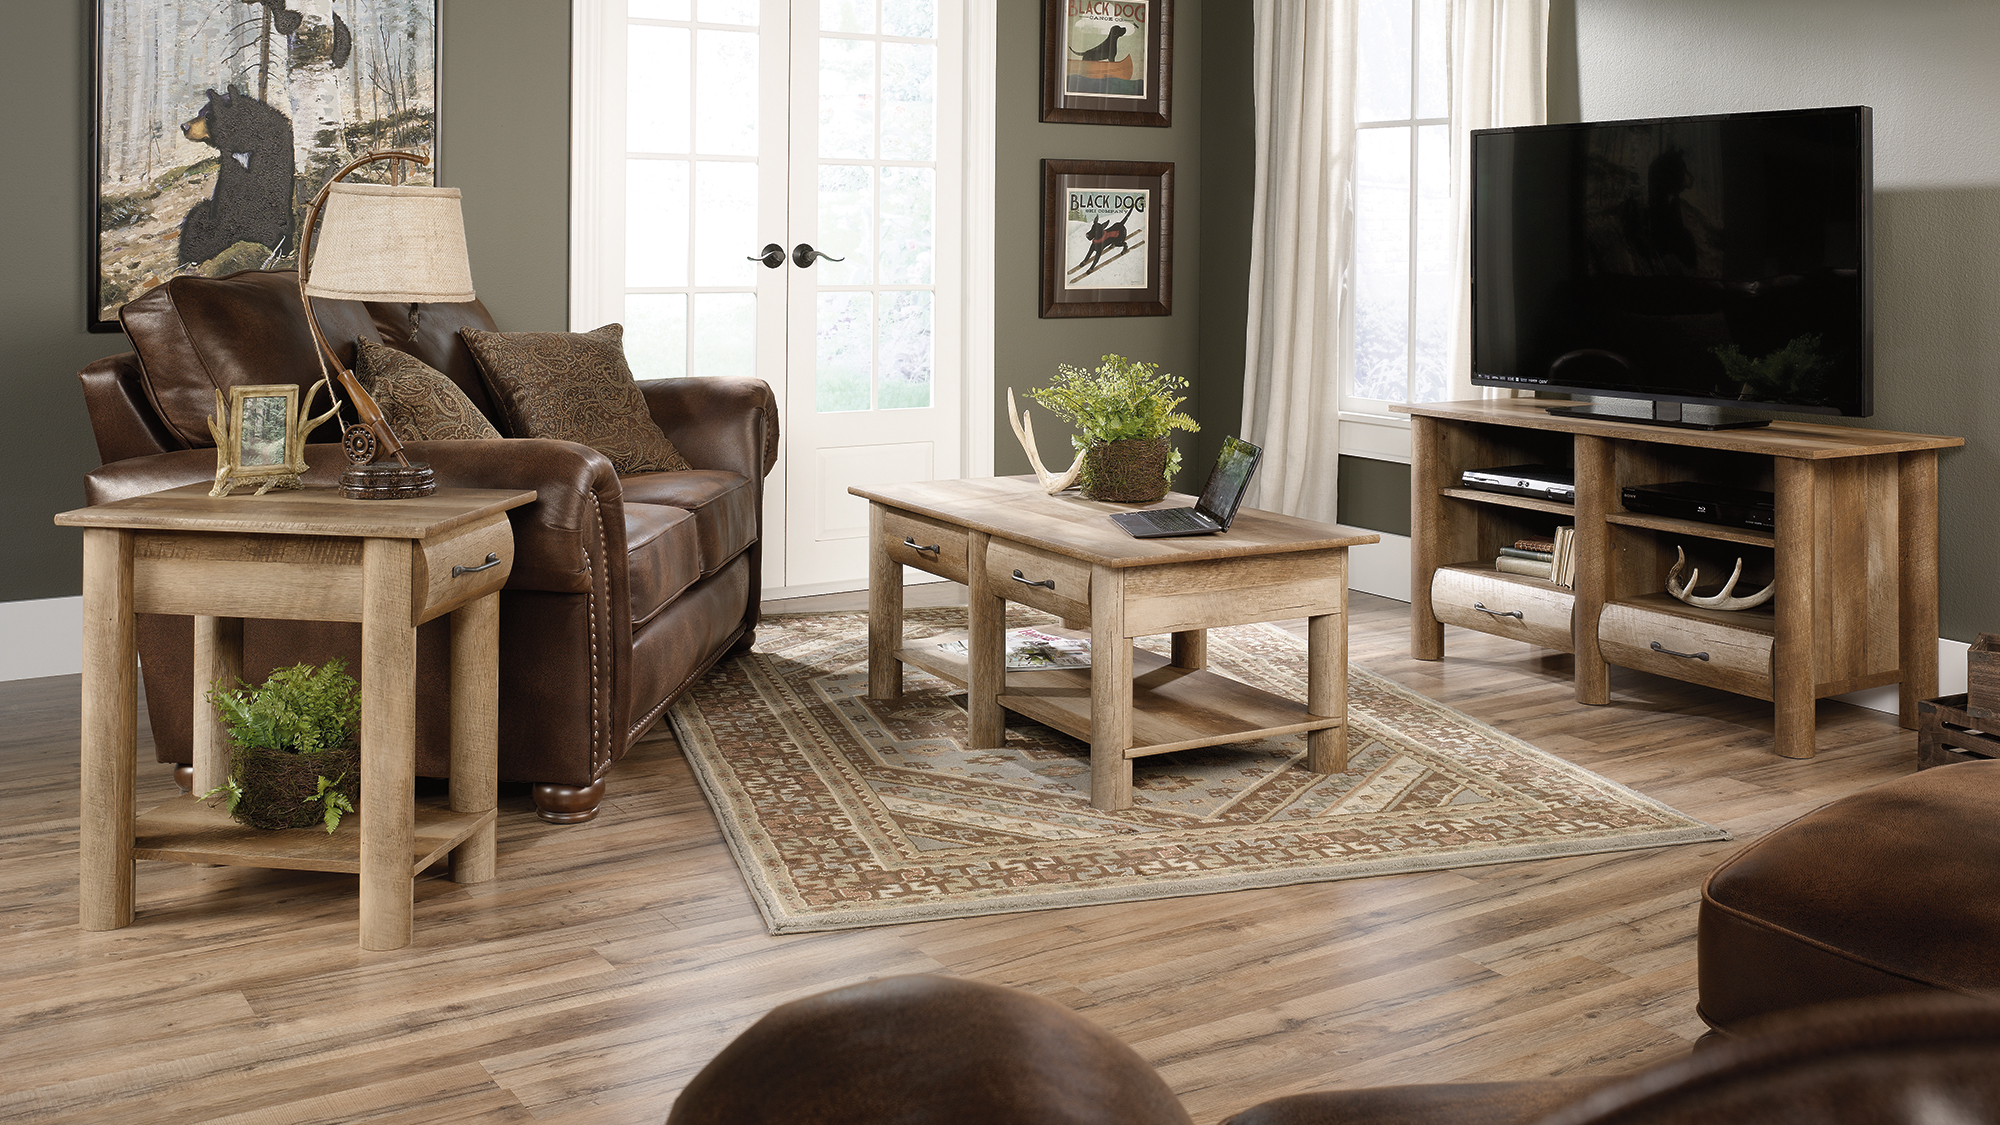 chic wooden tv stand by sauder furniture with wooden table and brown leather sofa on wooden floor with rug for living room decor ideas